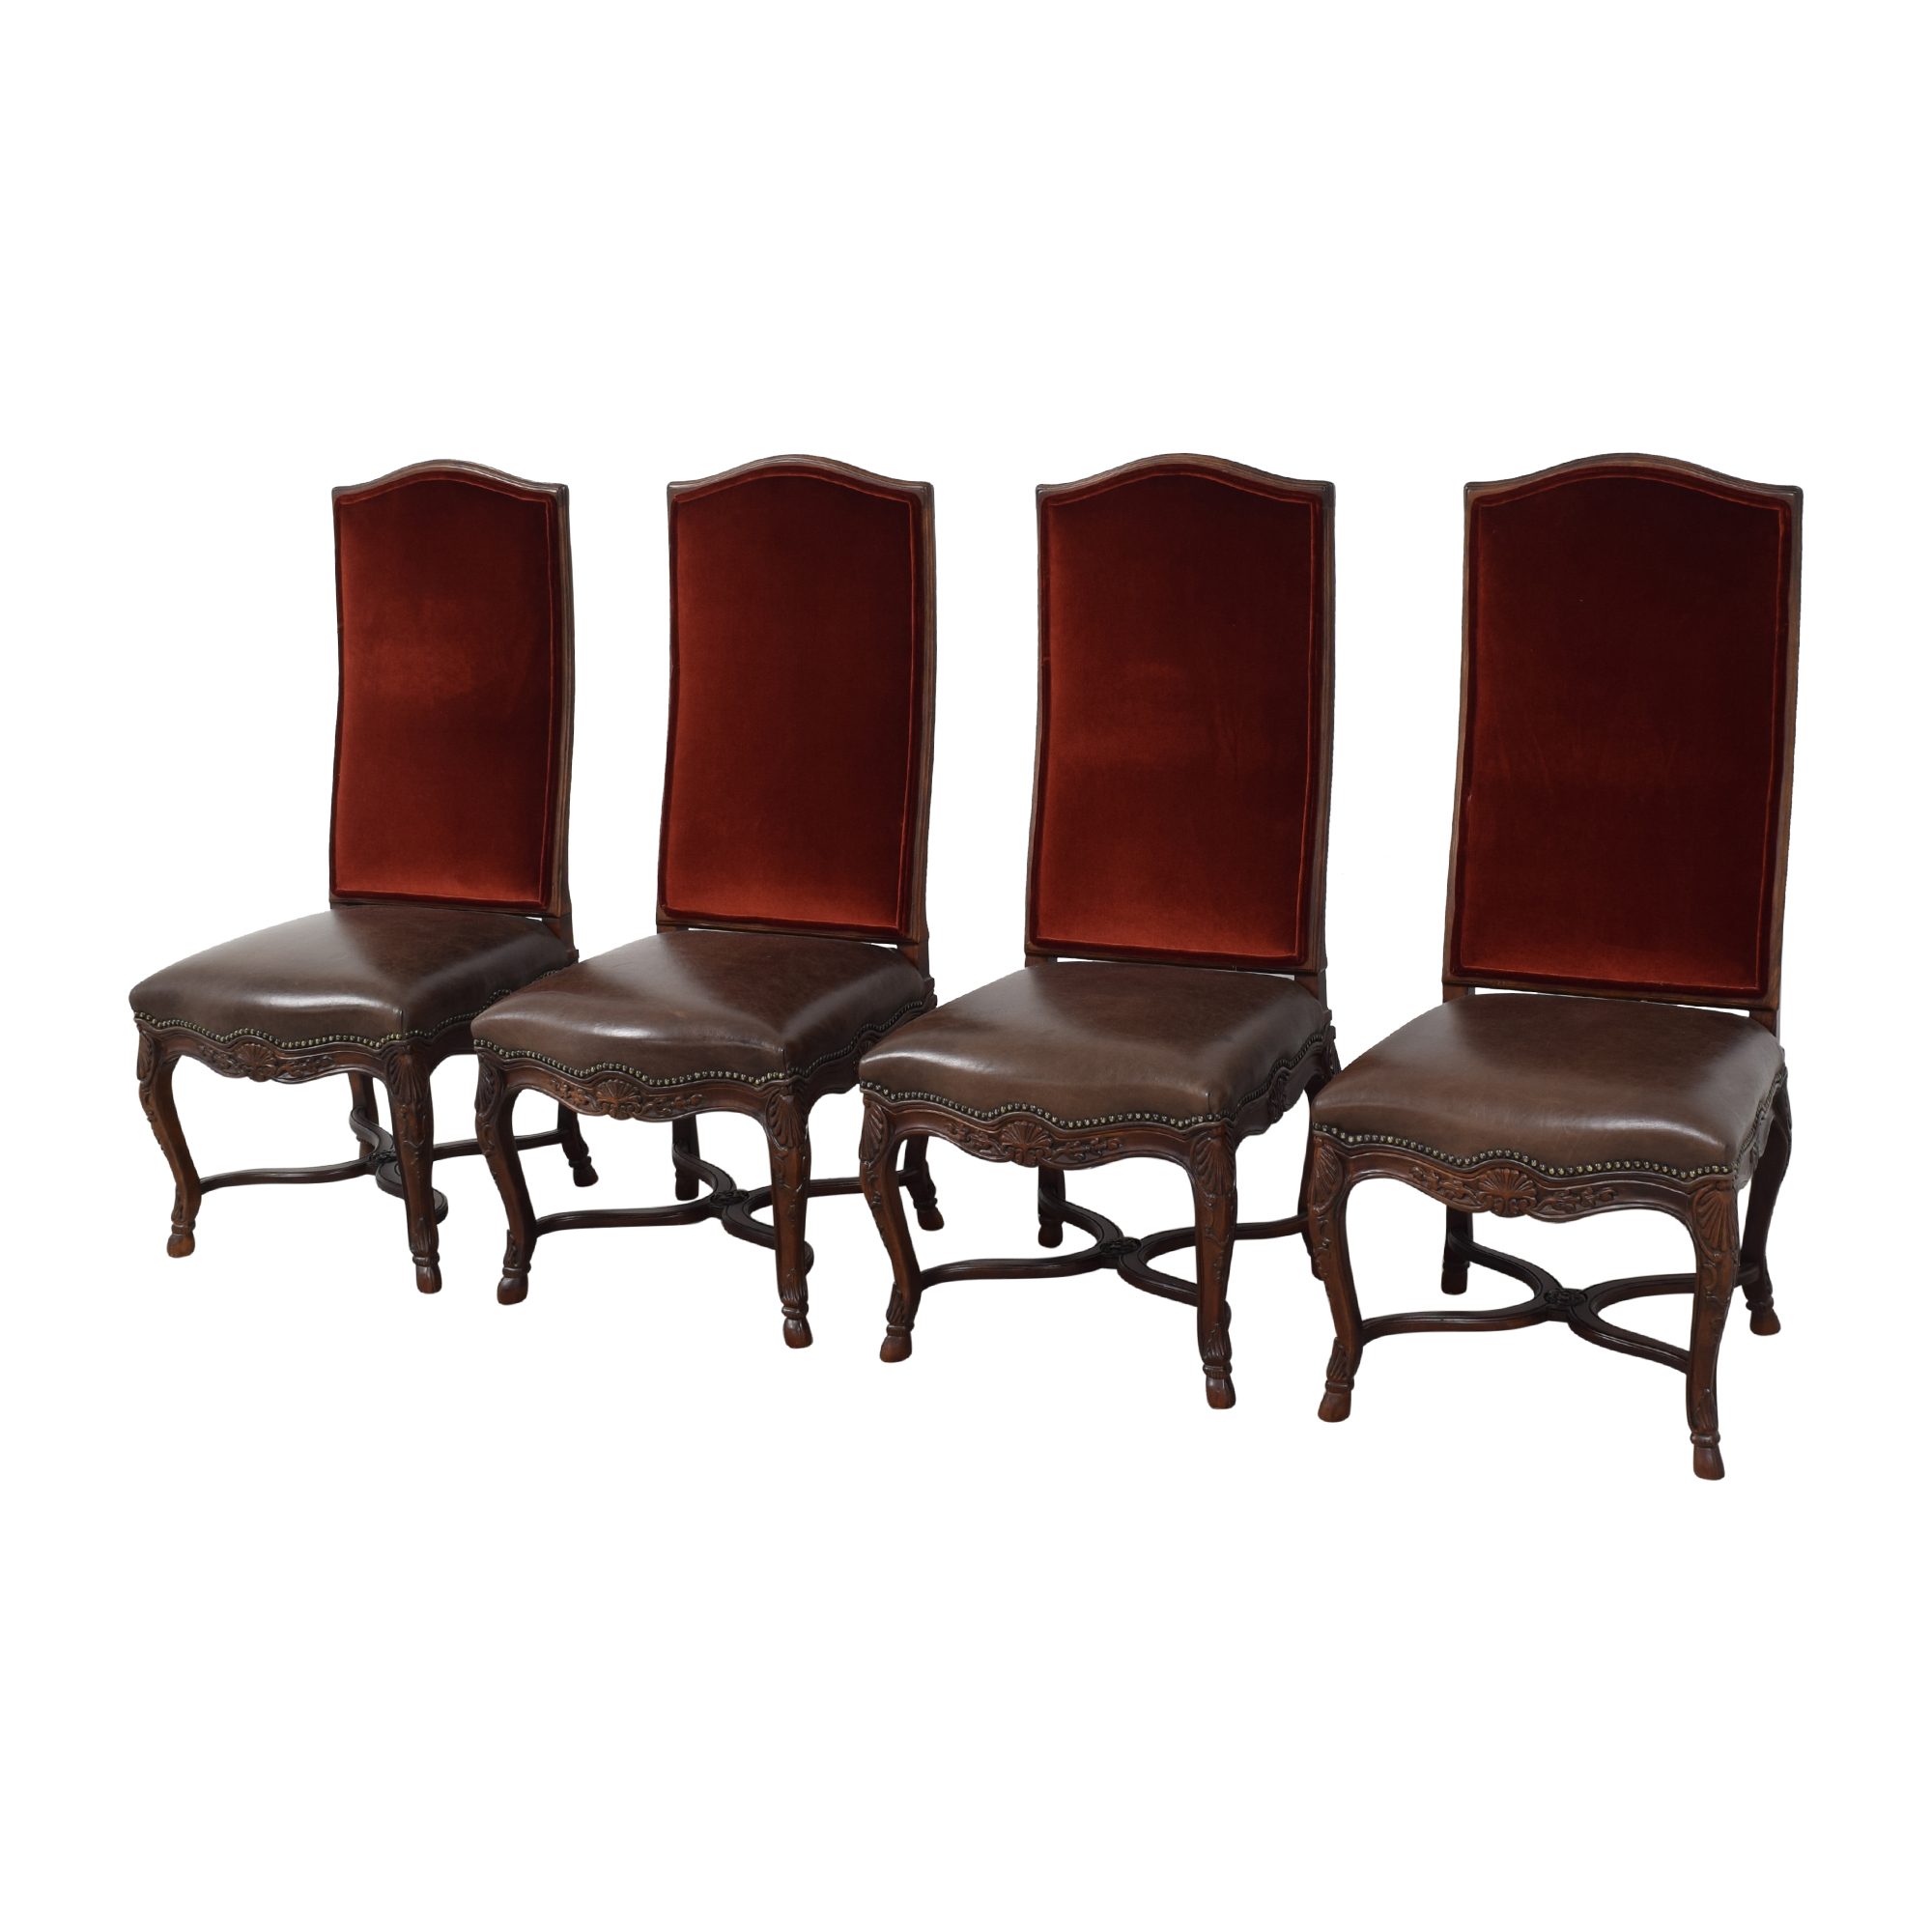 shop Safavieh High Back Formal Dining Chairs Safavieh Dining Chairs